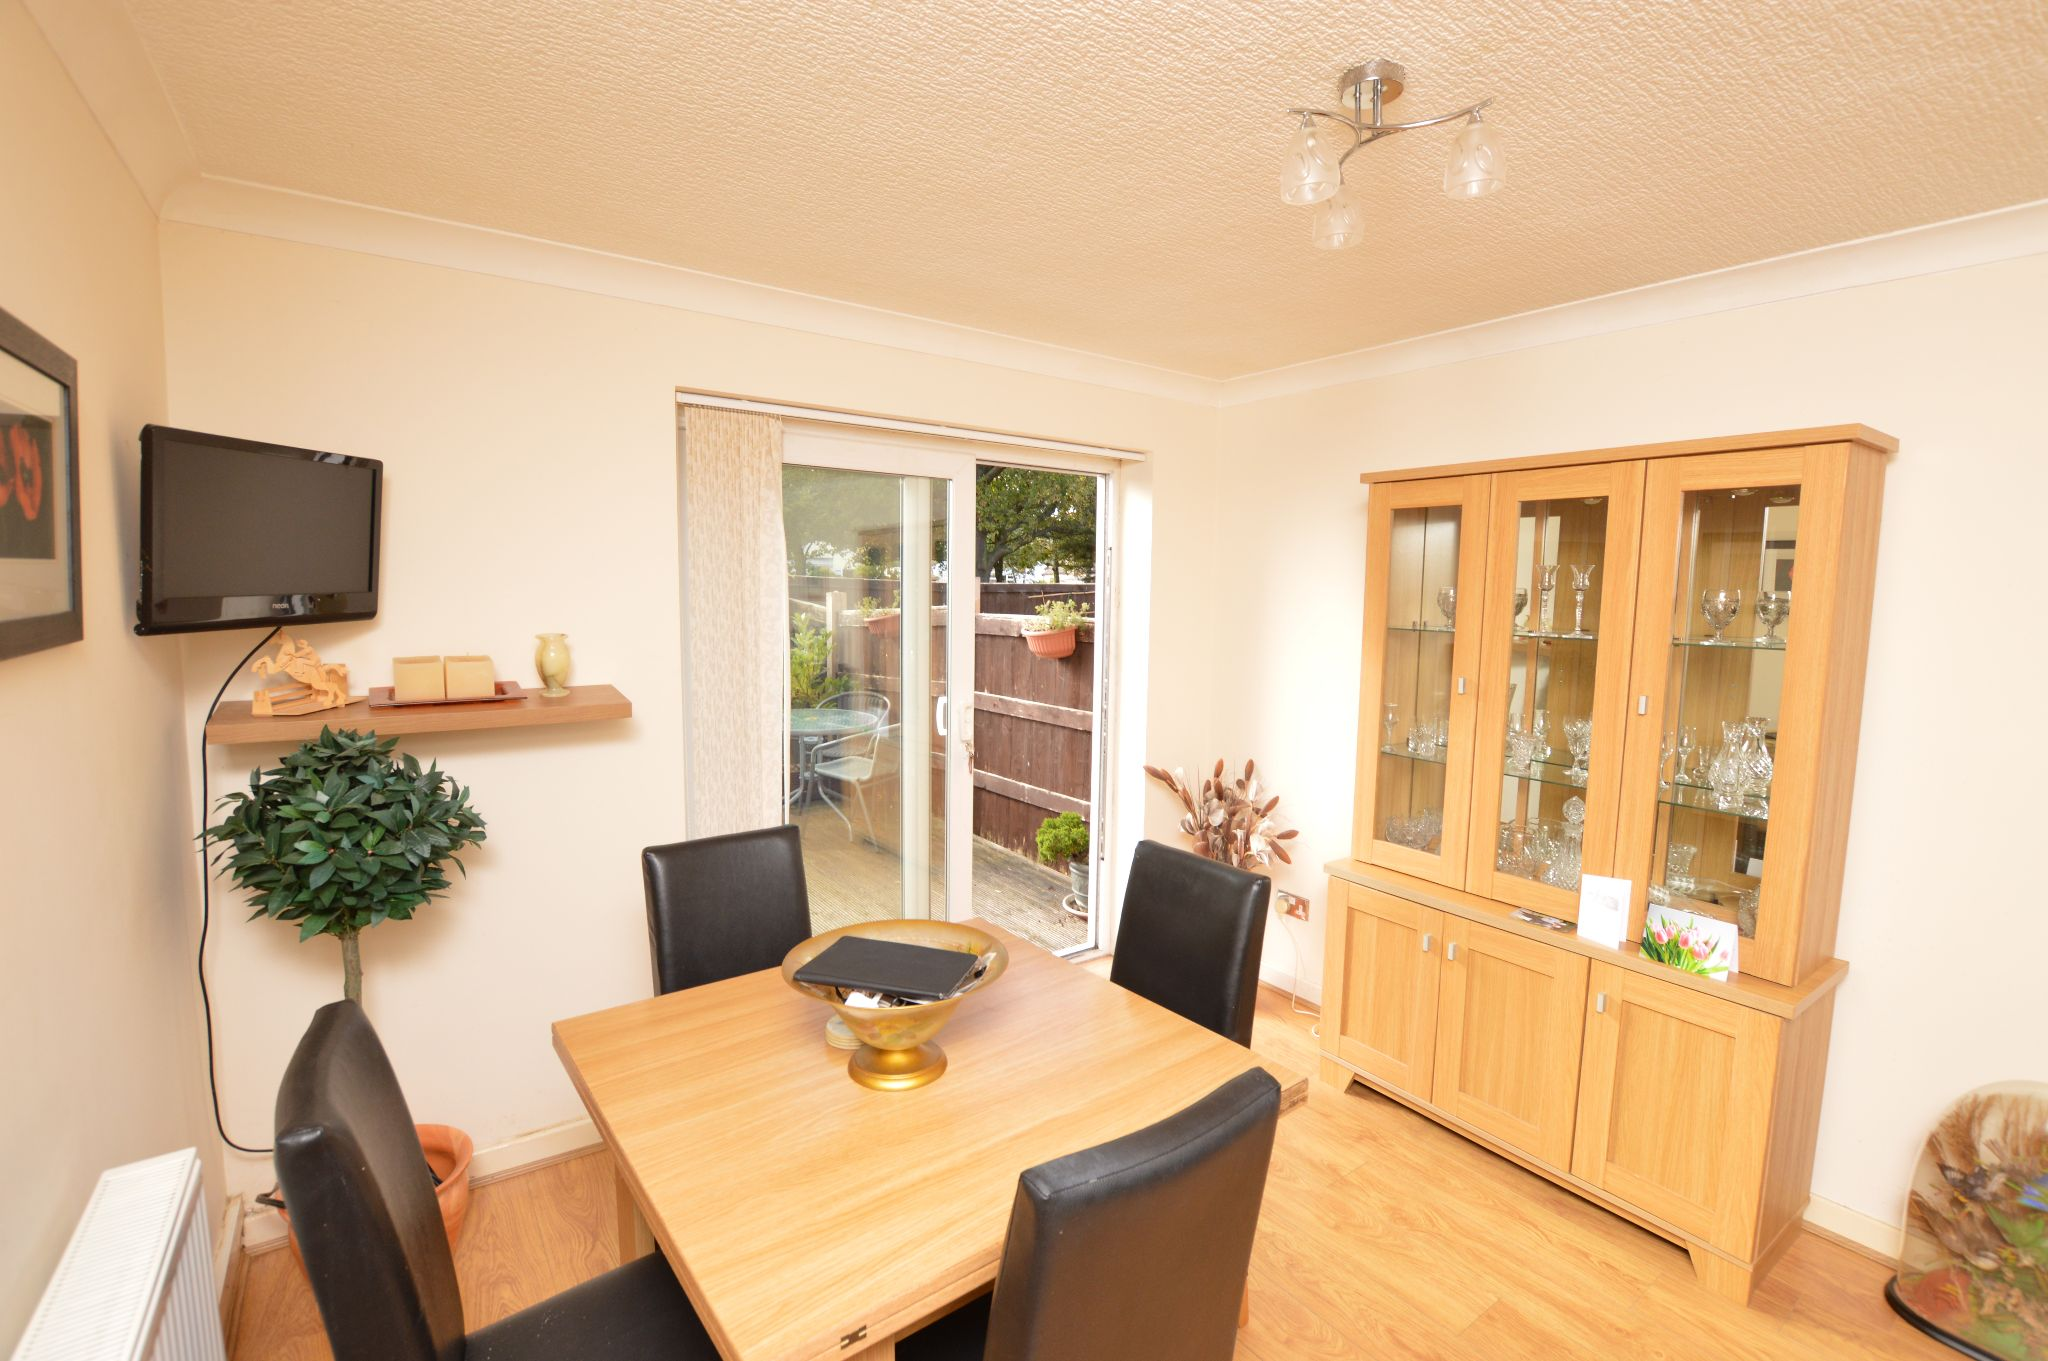 1 bedroom maisonette flat/apartment Under Offer in Abergele - Dining Area View 2